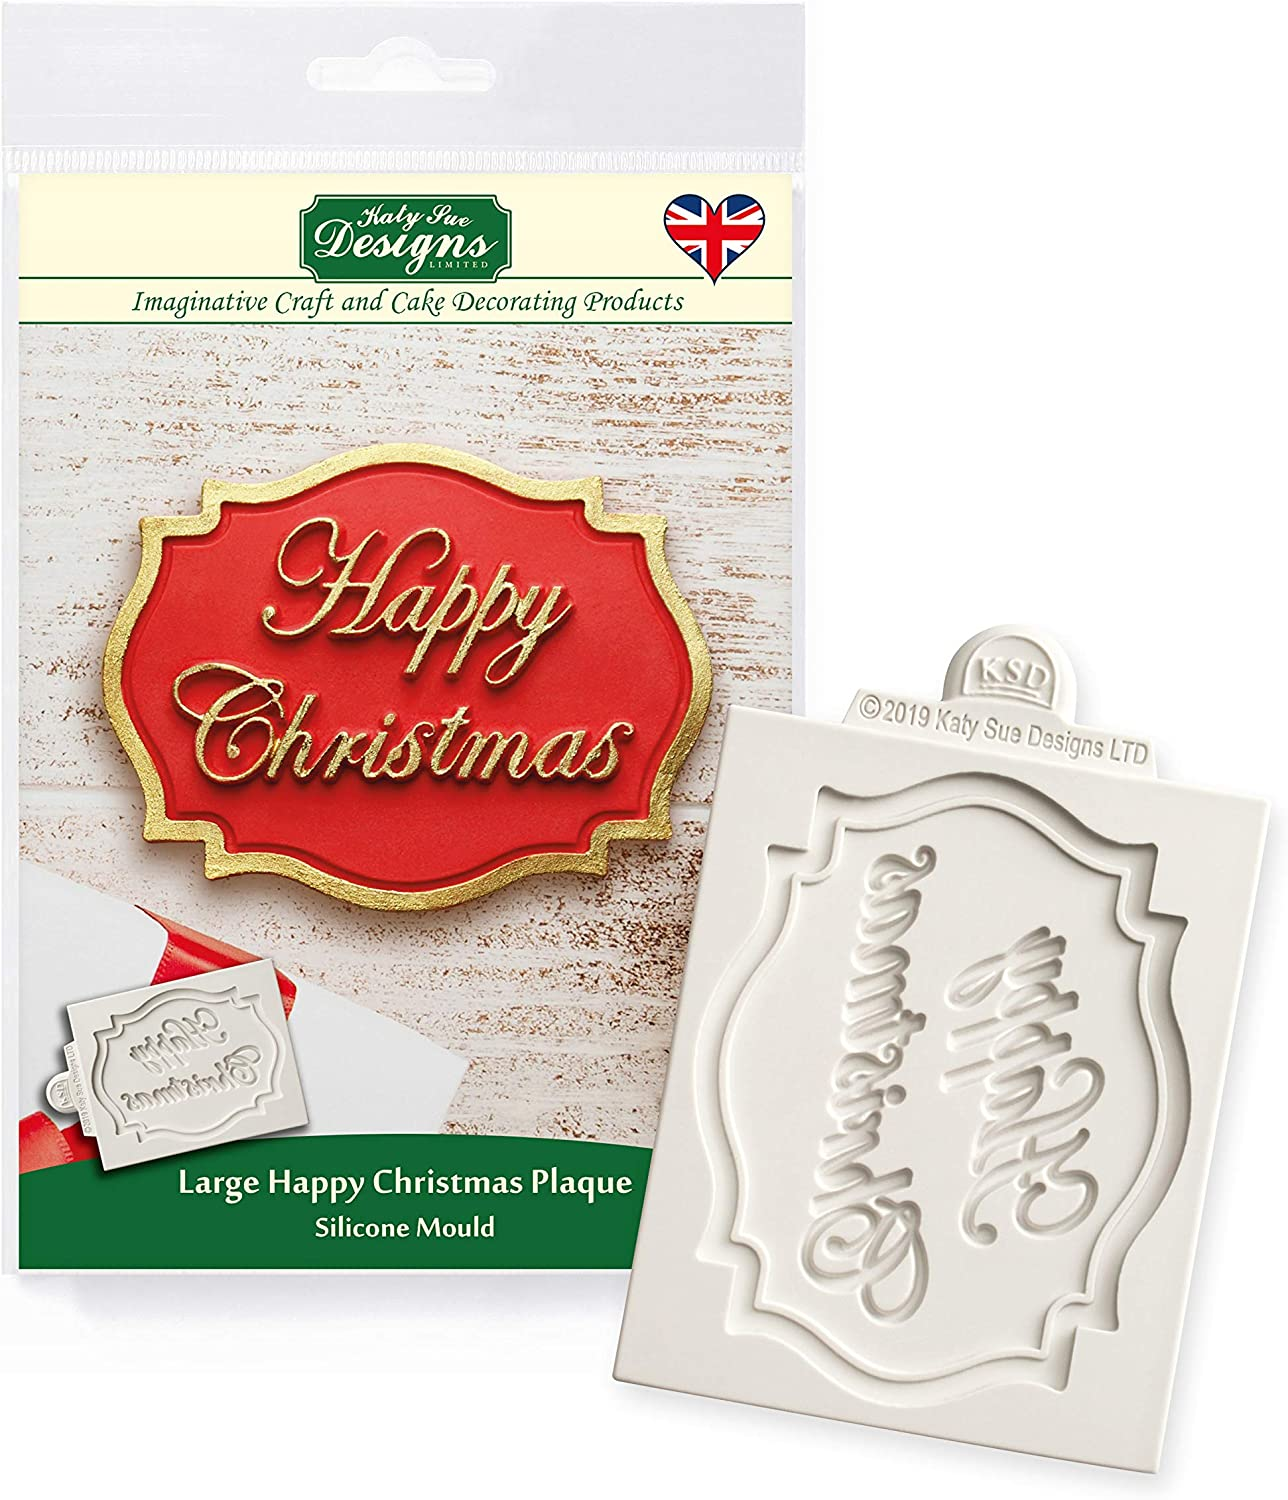 Katy Sue Large Happy Christmas Plaque Silicone Mold for Cake Decorating, Crafts, Cupcakes, Sugarcraft, Candies, Chocolate, Card Making and Clay, Food Safe Approved, Made in The UK